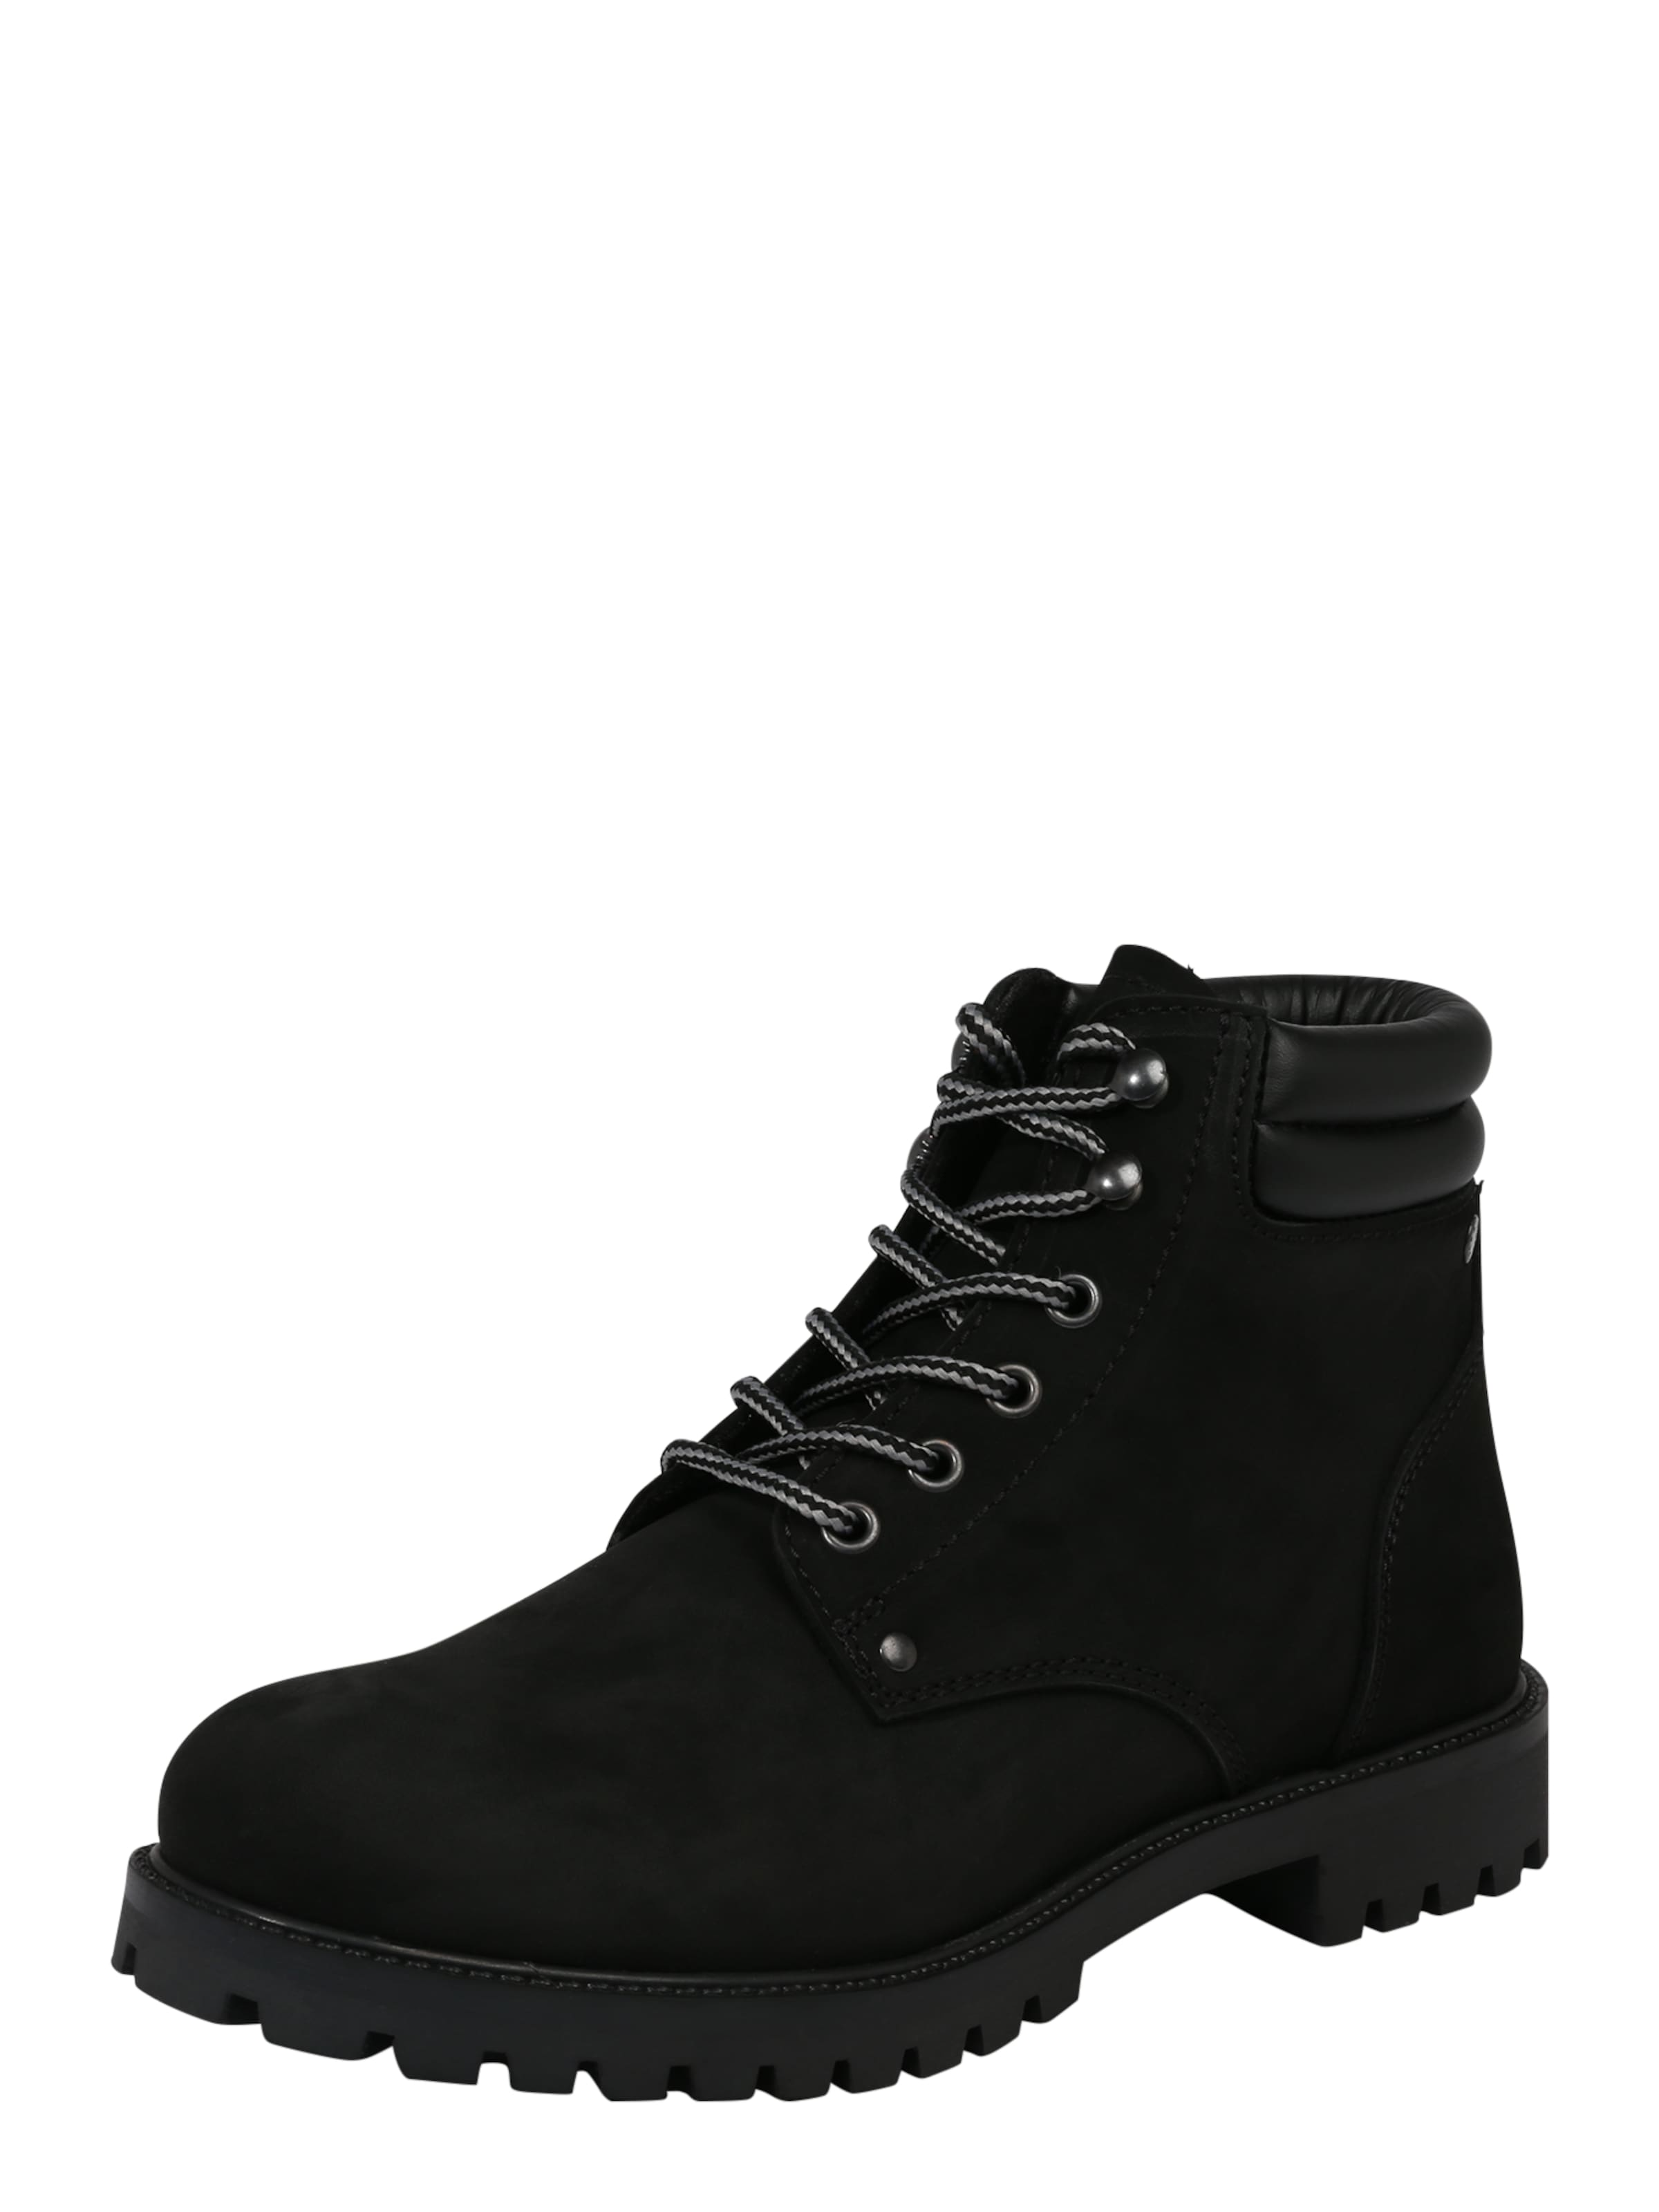 Stiefel In Jones 'jfwstoke' Schwarz Jackamp; zqVpSUGM